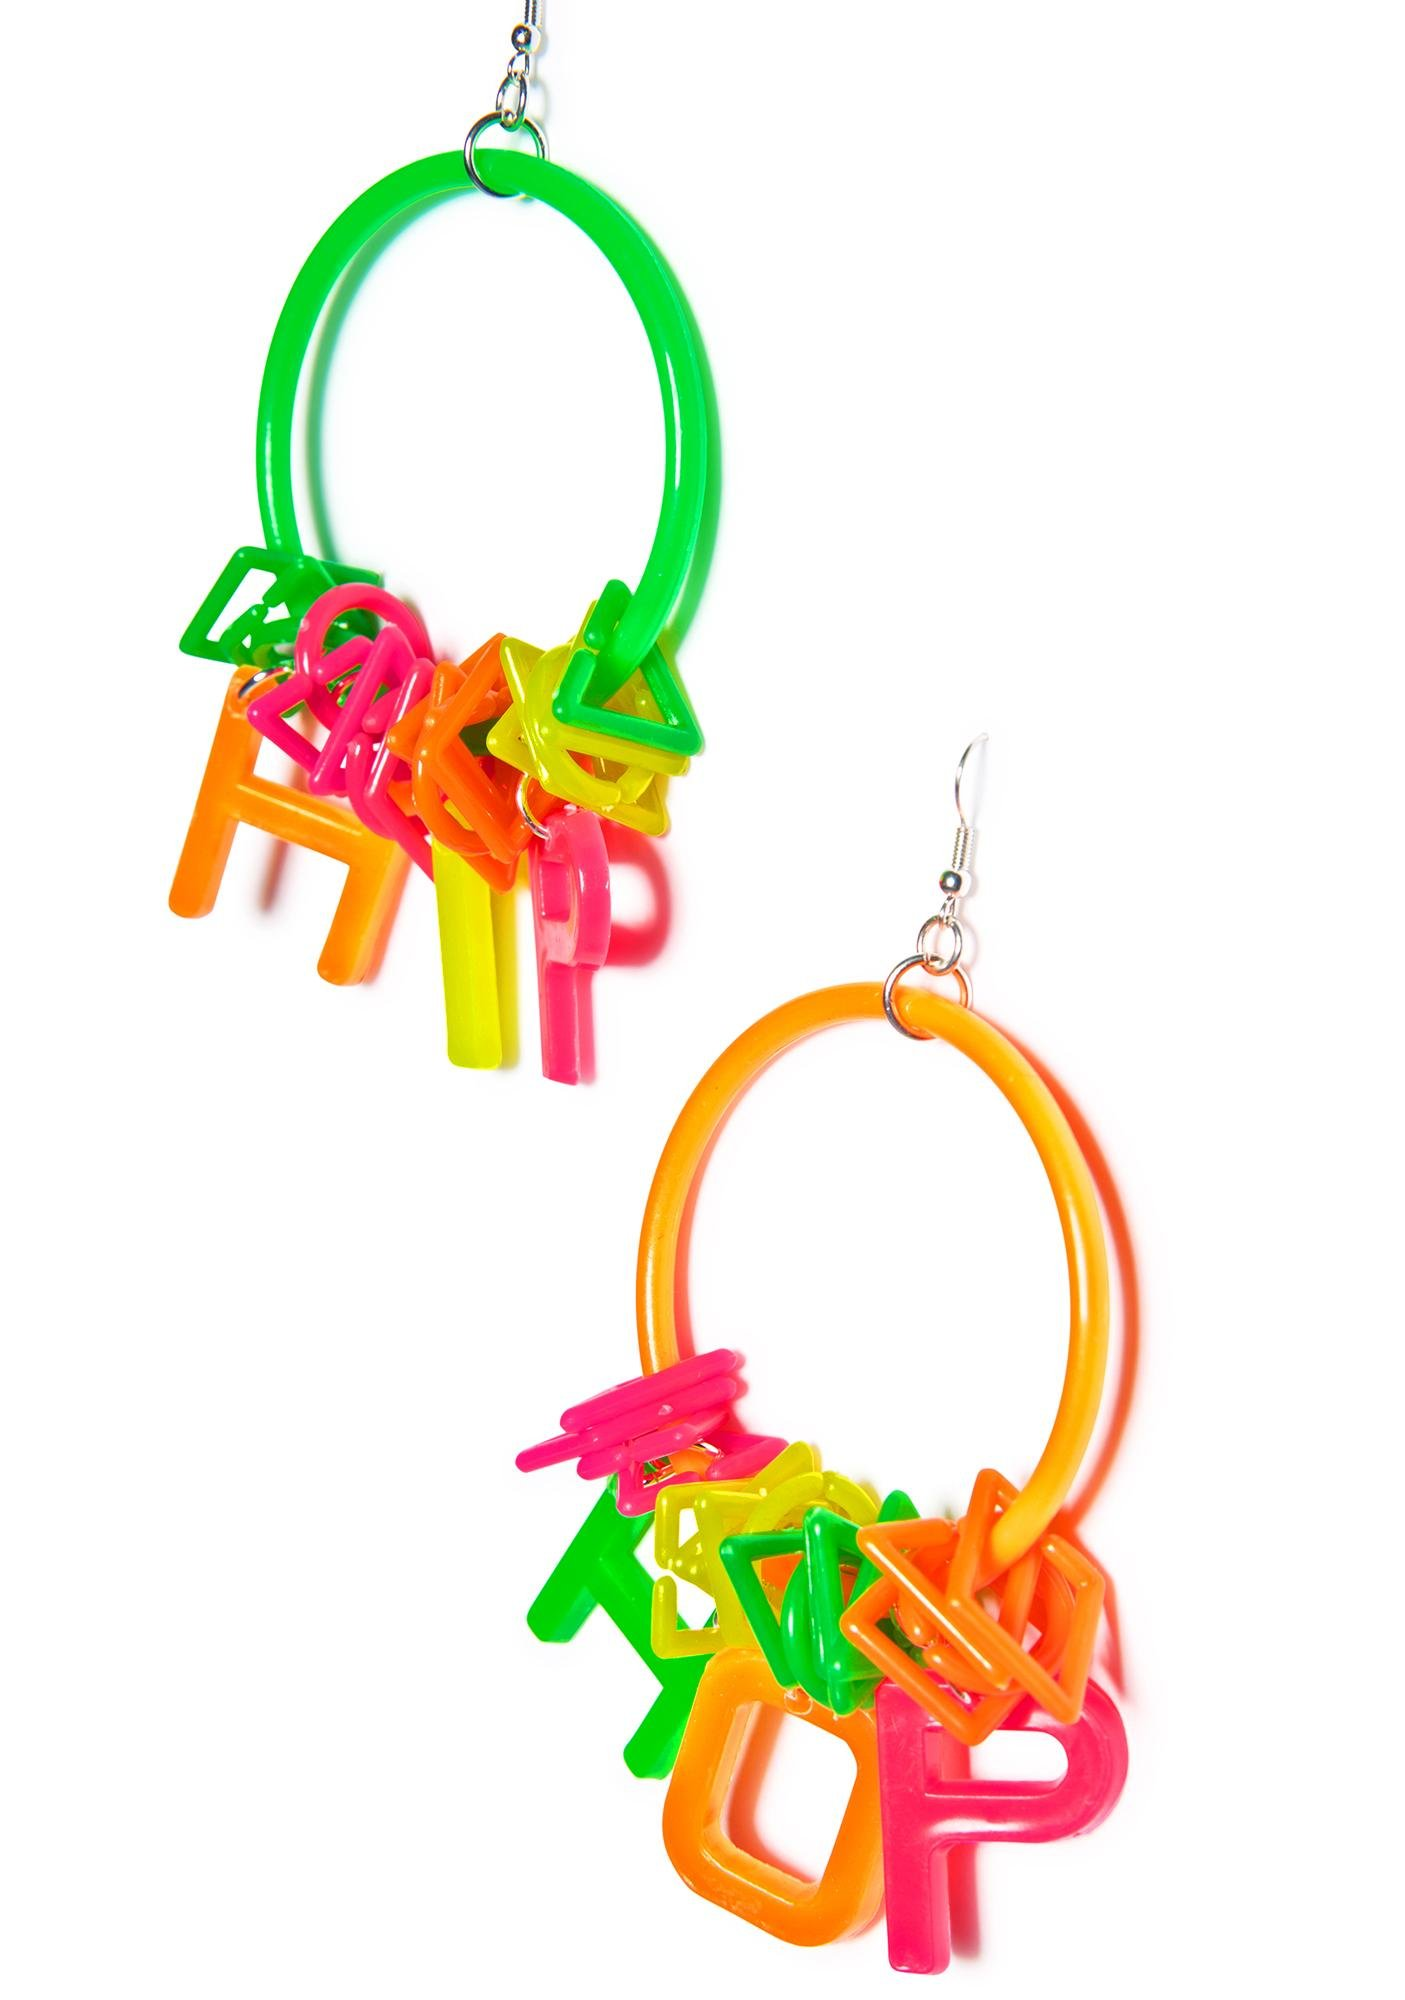 Trixy Starr Hip Hop Hoop Earrings